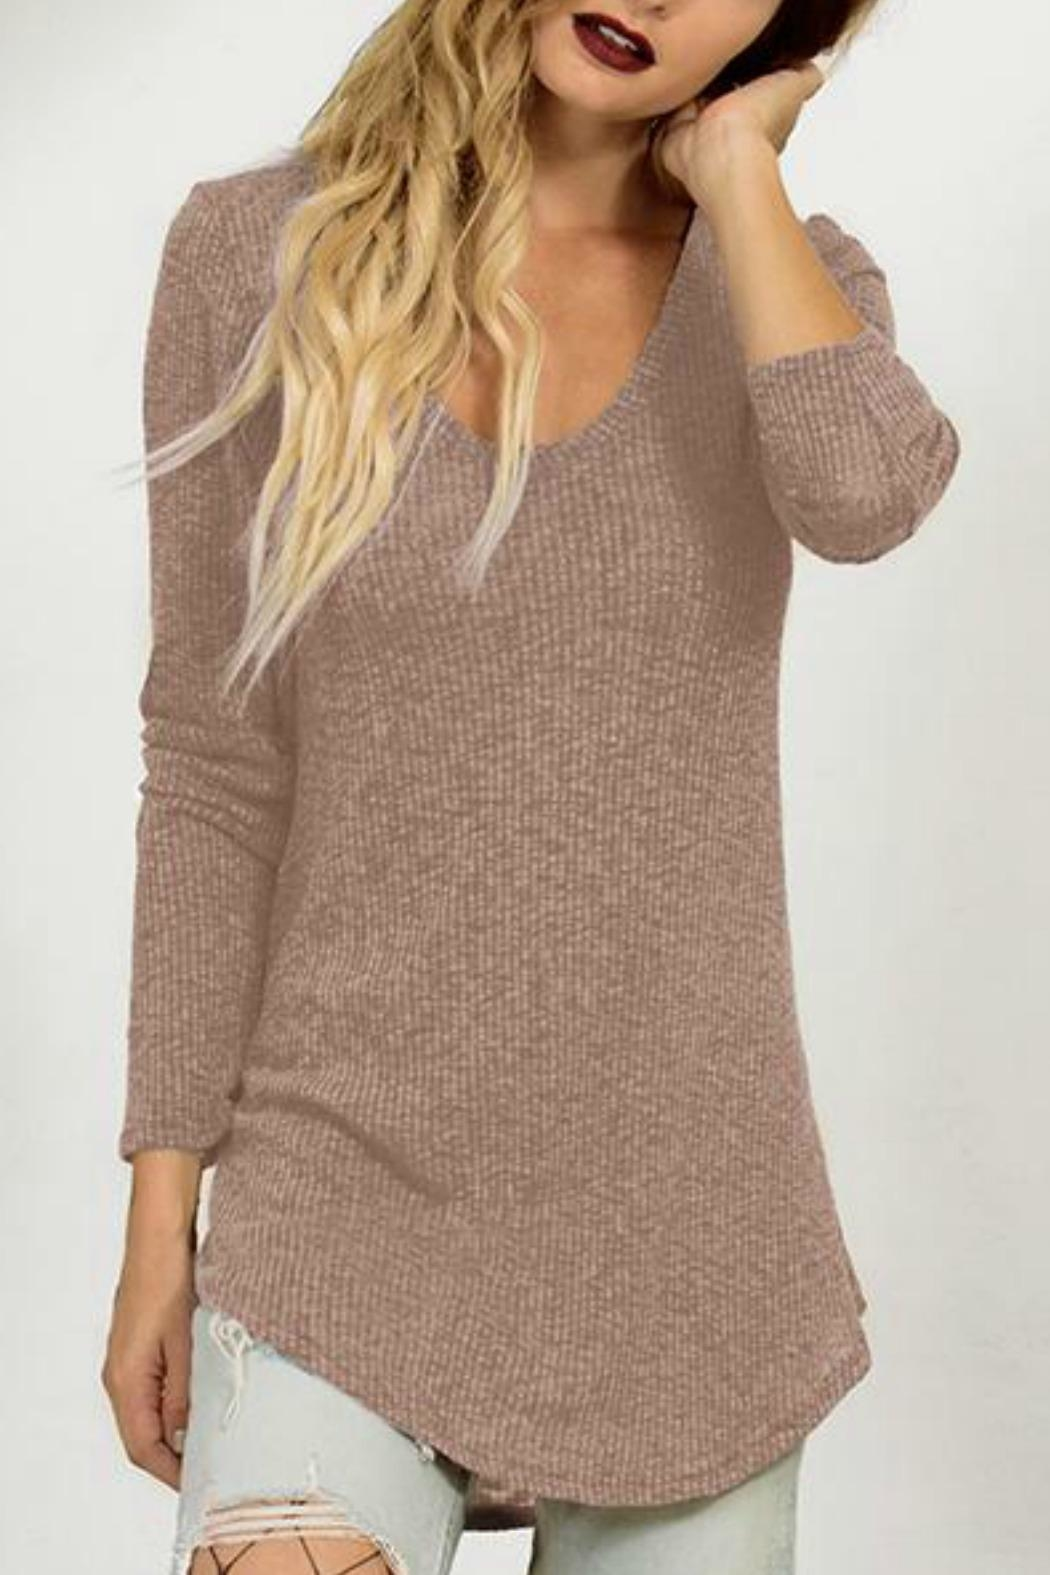 Astars Ribbed Scoop-Neck Tunic - Main Image